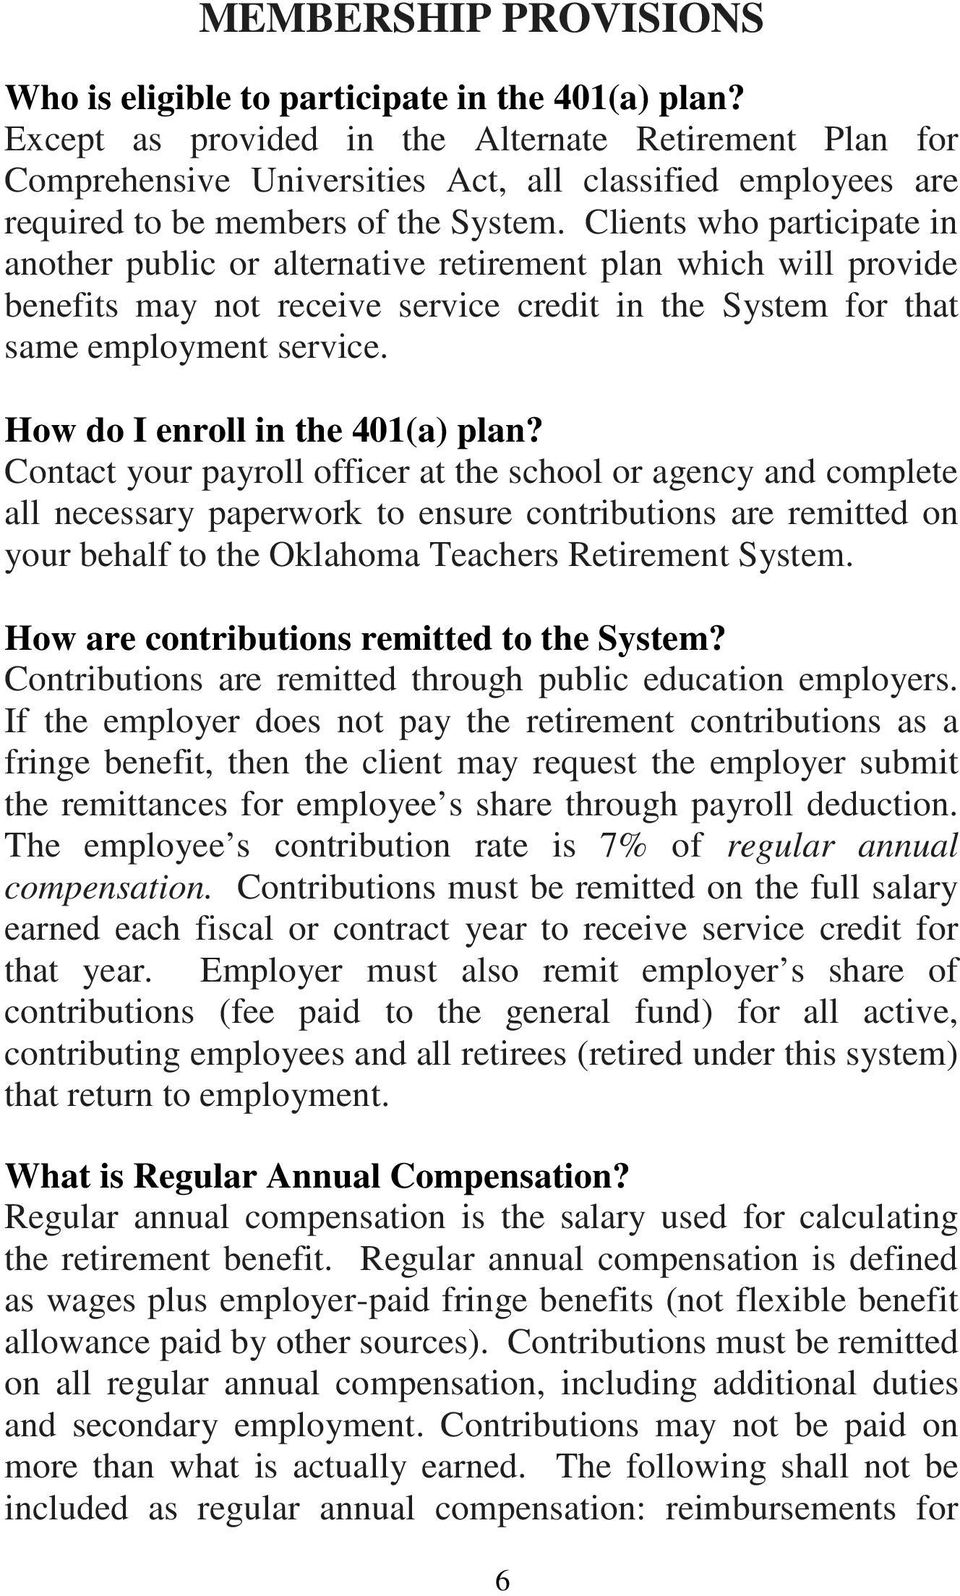 Clients who participate in another public or alternative retirement plan which will provide benefits may not receive service credit in the System for that same employment service.